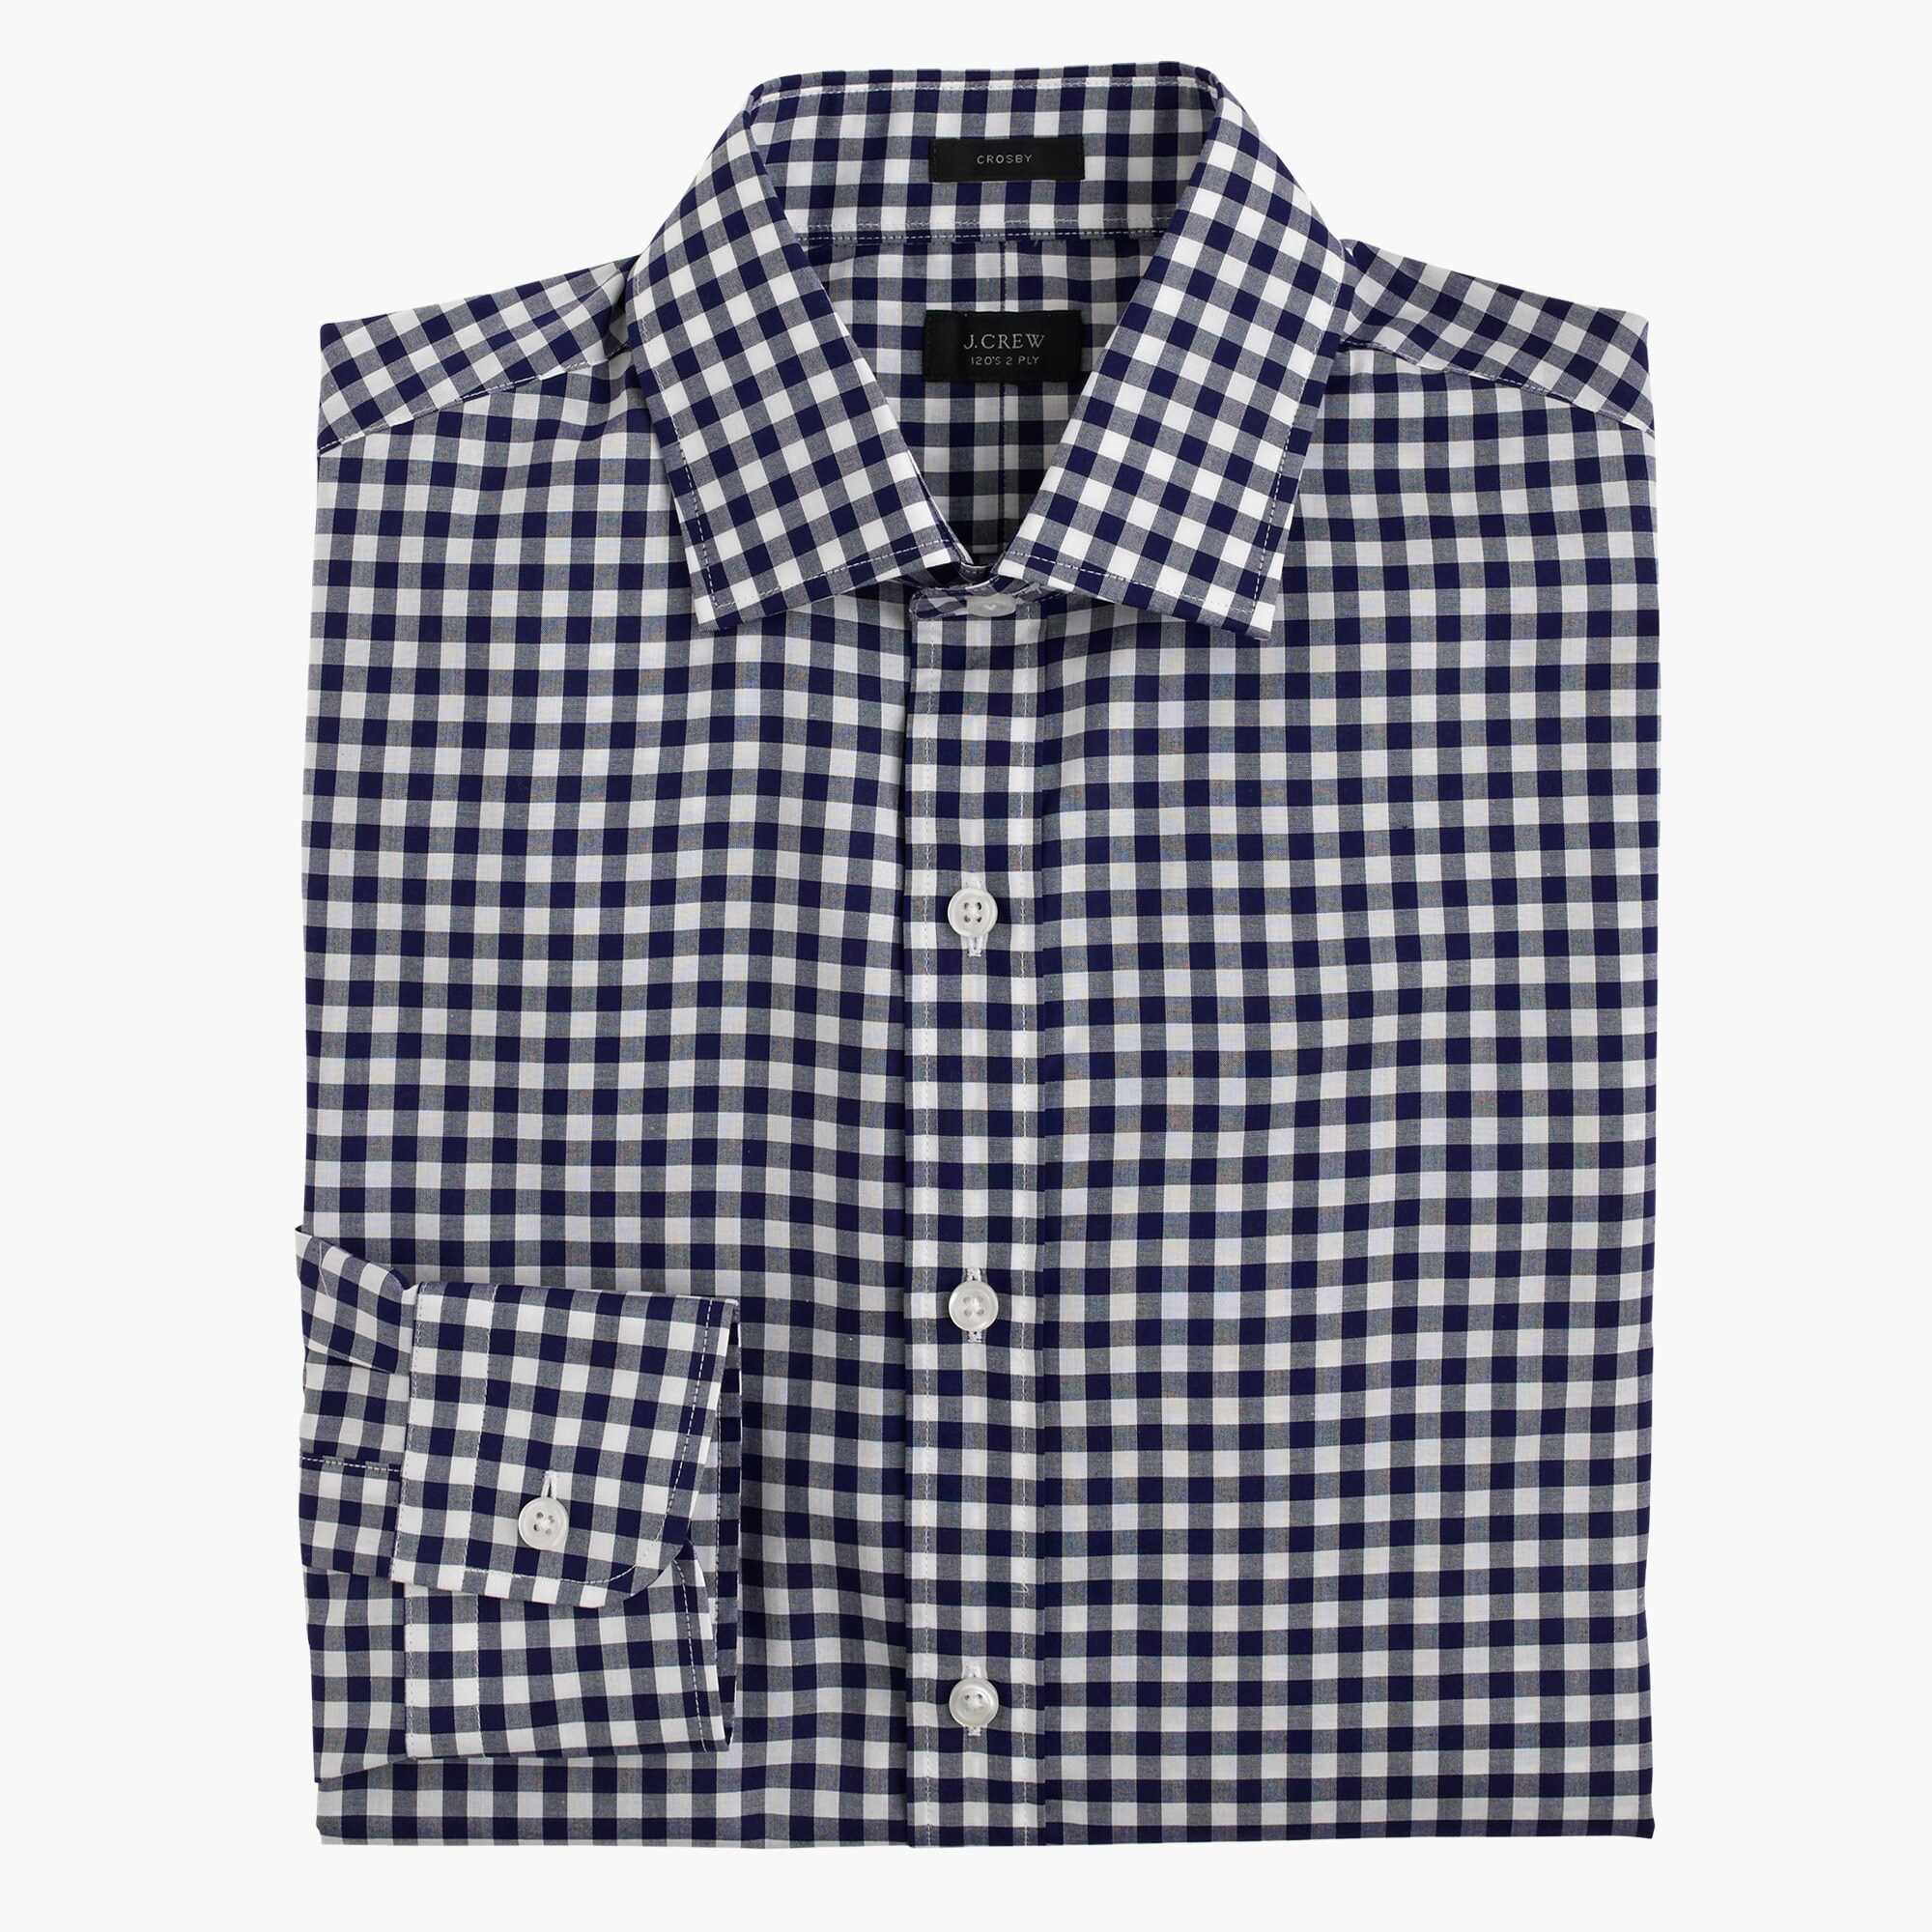 crosby shirt in classic navy gingham : men's shirts